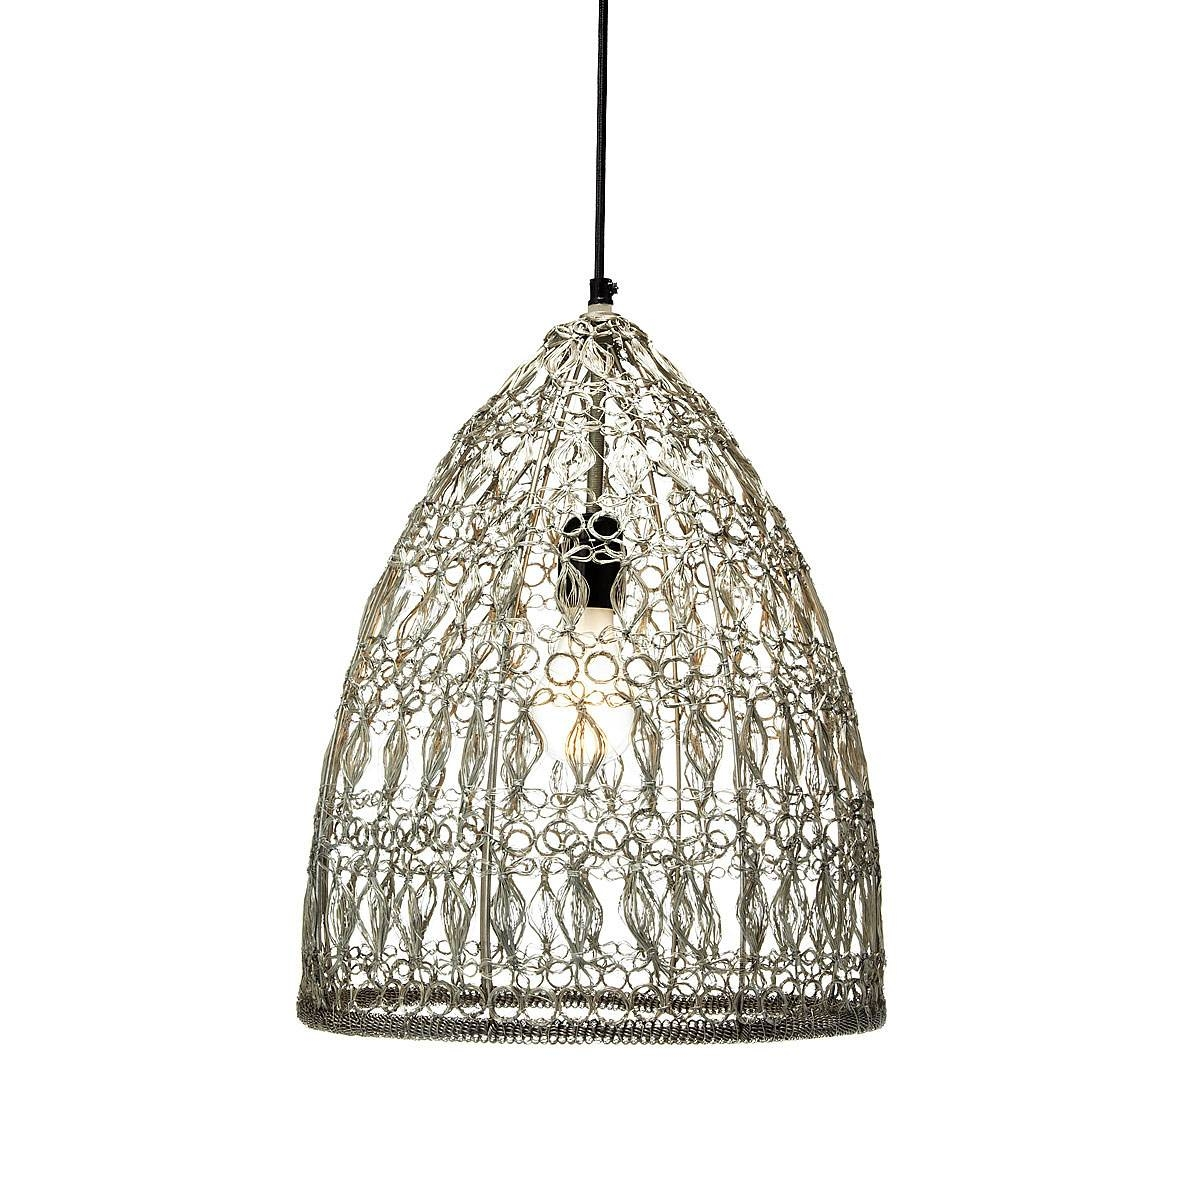 Crochet Wire Pendant Lamp | Pendant Lamp, Handmade, Metal Wire with Corded Pendant Lights (Image 2 of 15)